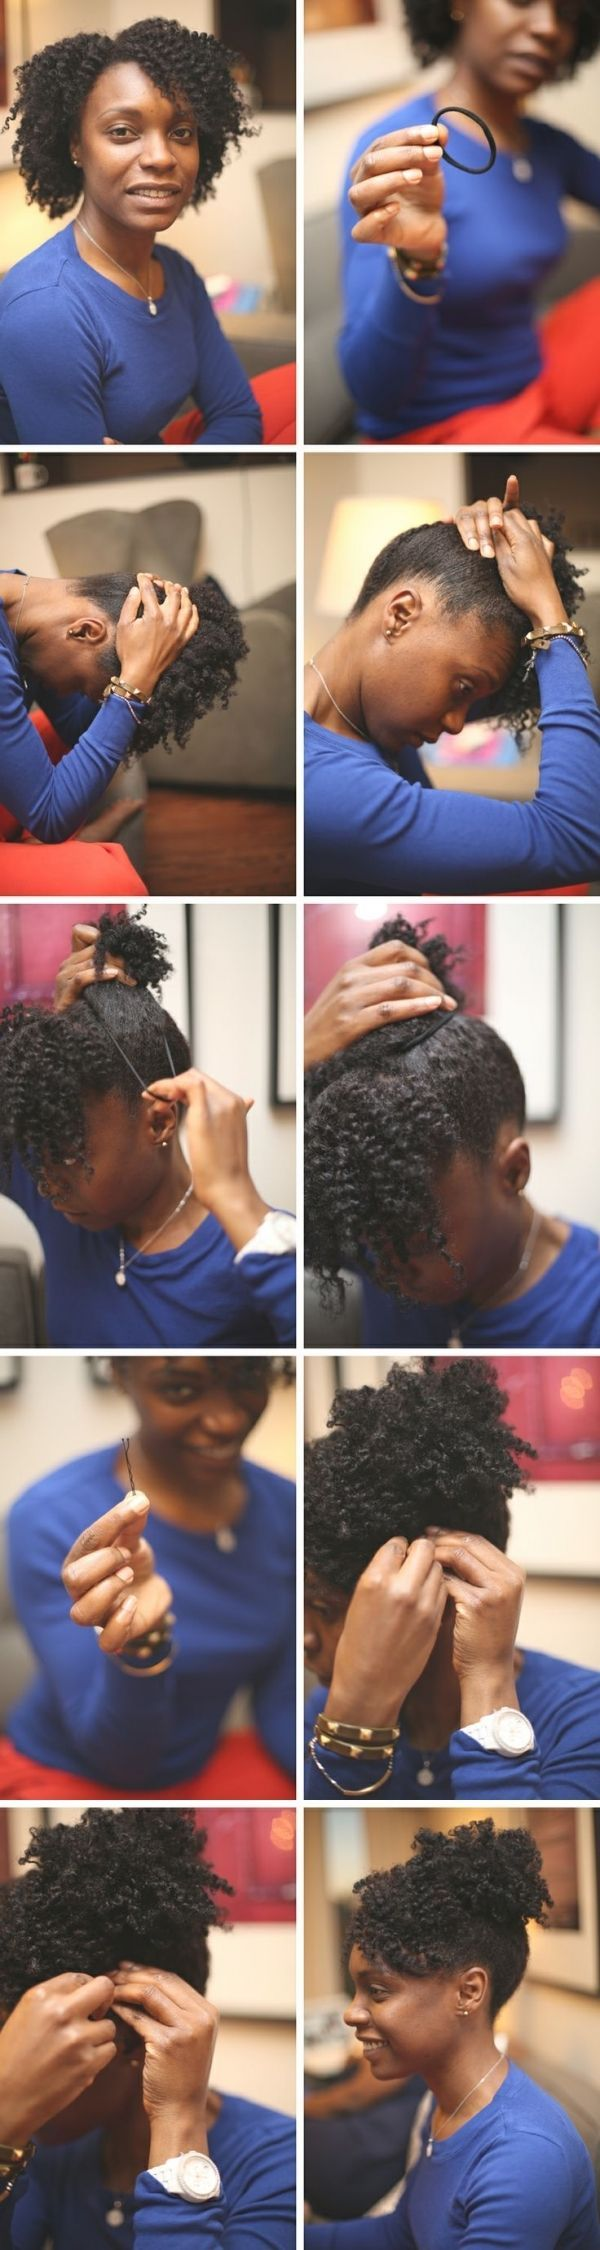 http://www.shorthaircutsforblackwomen.com/dafni-brush-that-straightens-hair-works-too-expensive/ Crushworthy Natural Hair Ideas.  Learn to care for elegant natural hair, highlights for your coils and color. Do it yourself diy, on long or short twa styles, 4c, 4b, 4a, medium, dreadlocks, easy twists and protective styles, learn transition techniques through quick tutorials on our natural hair blog. #professionalnaturalhairstyles